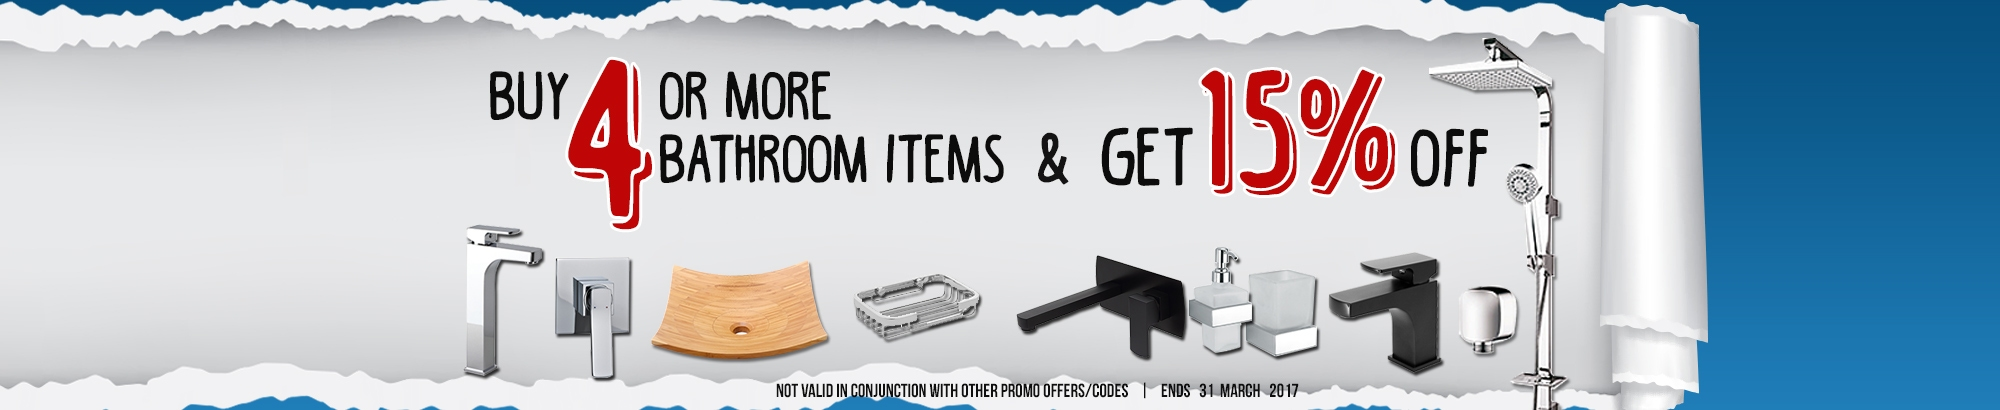 Buy 4 or more bathroom items and GET 15% OFF